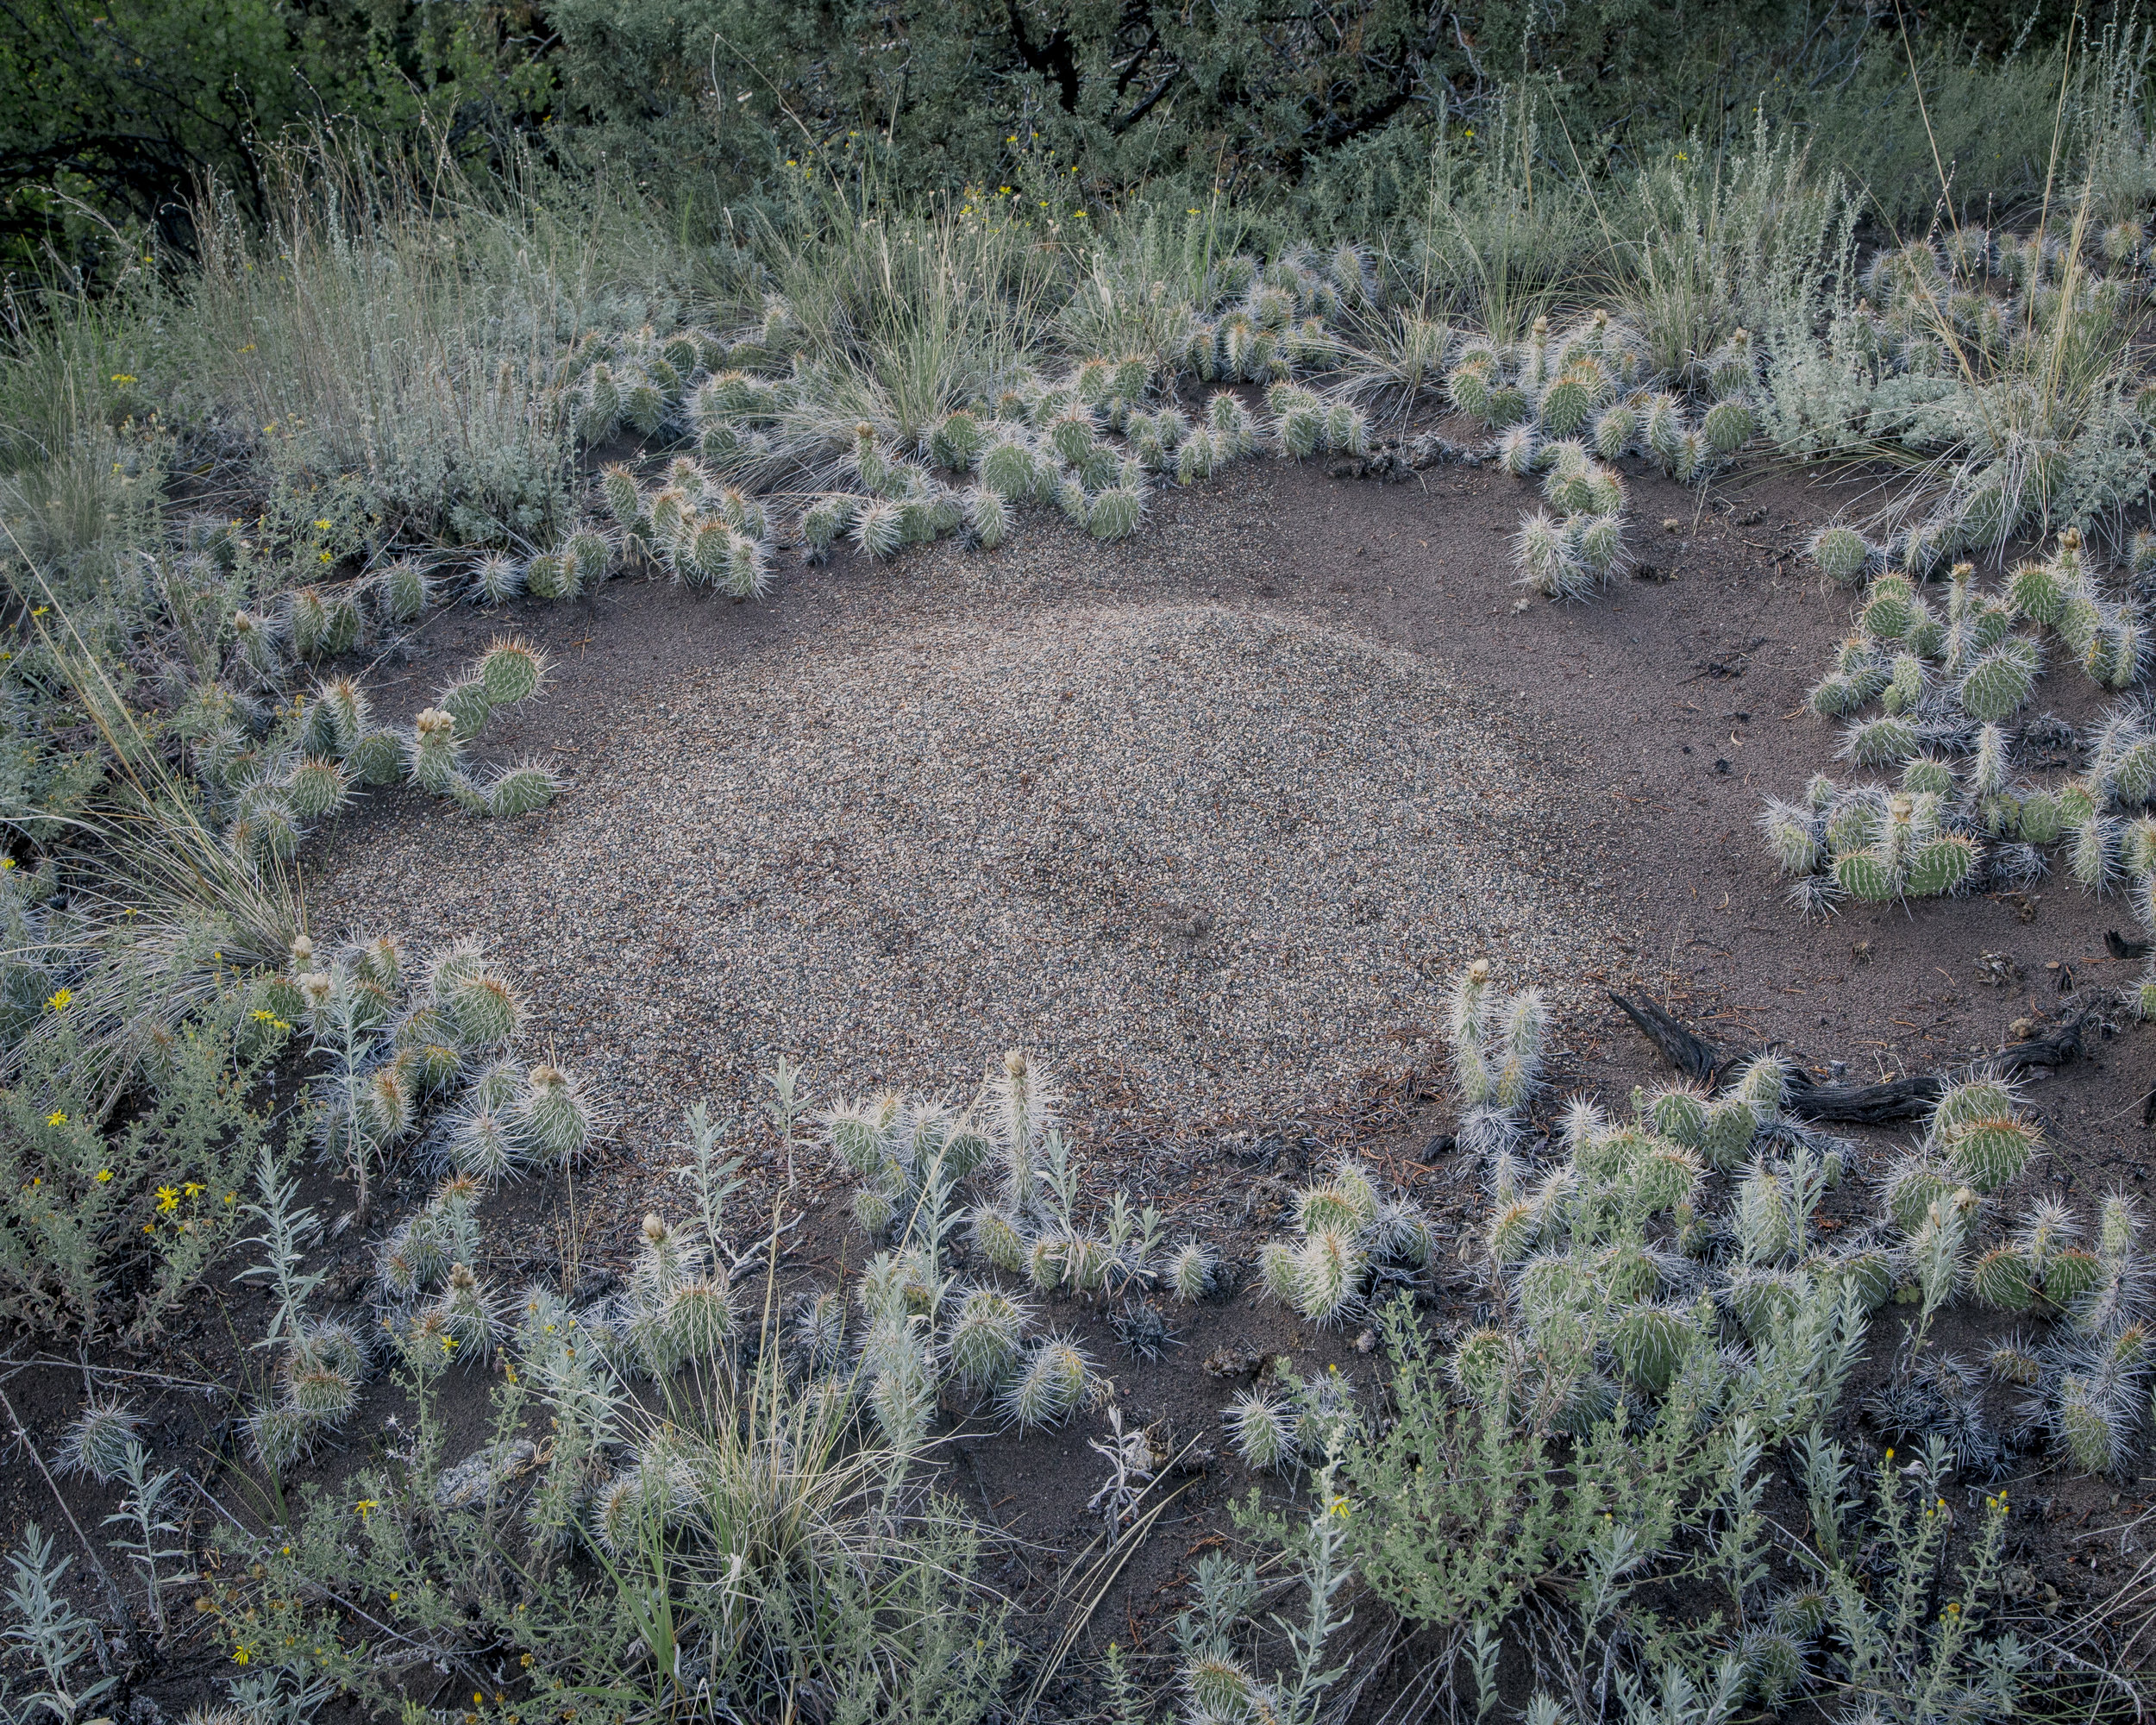 Ant hill with cacti.